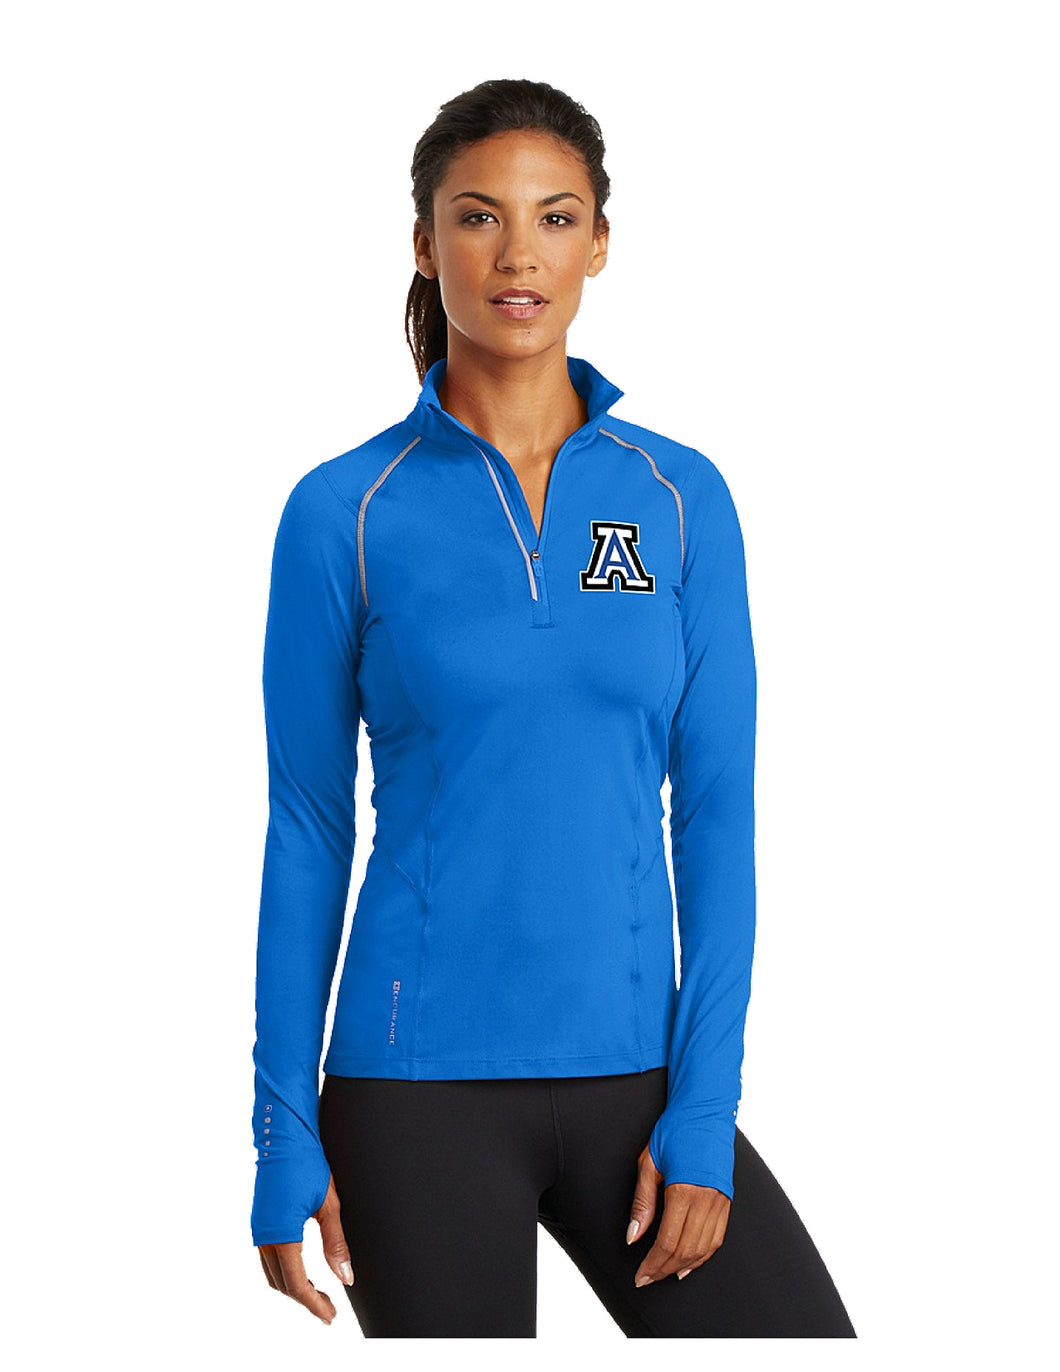 OGIO® ENDURANCE Ladies Nexus 1/4-Zip Pullover Electric Blue with Embroidered Acalanes